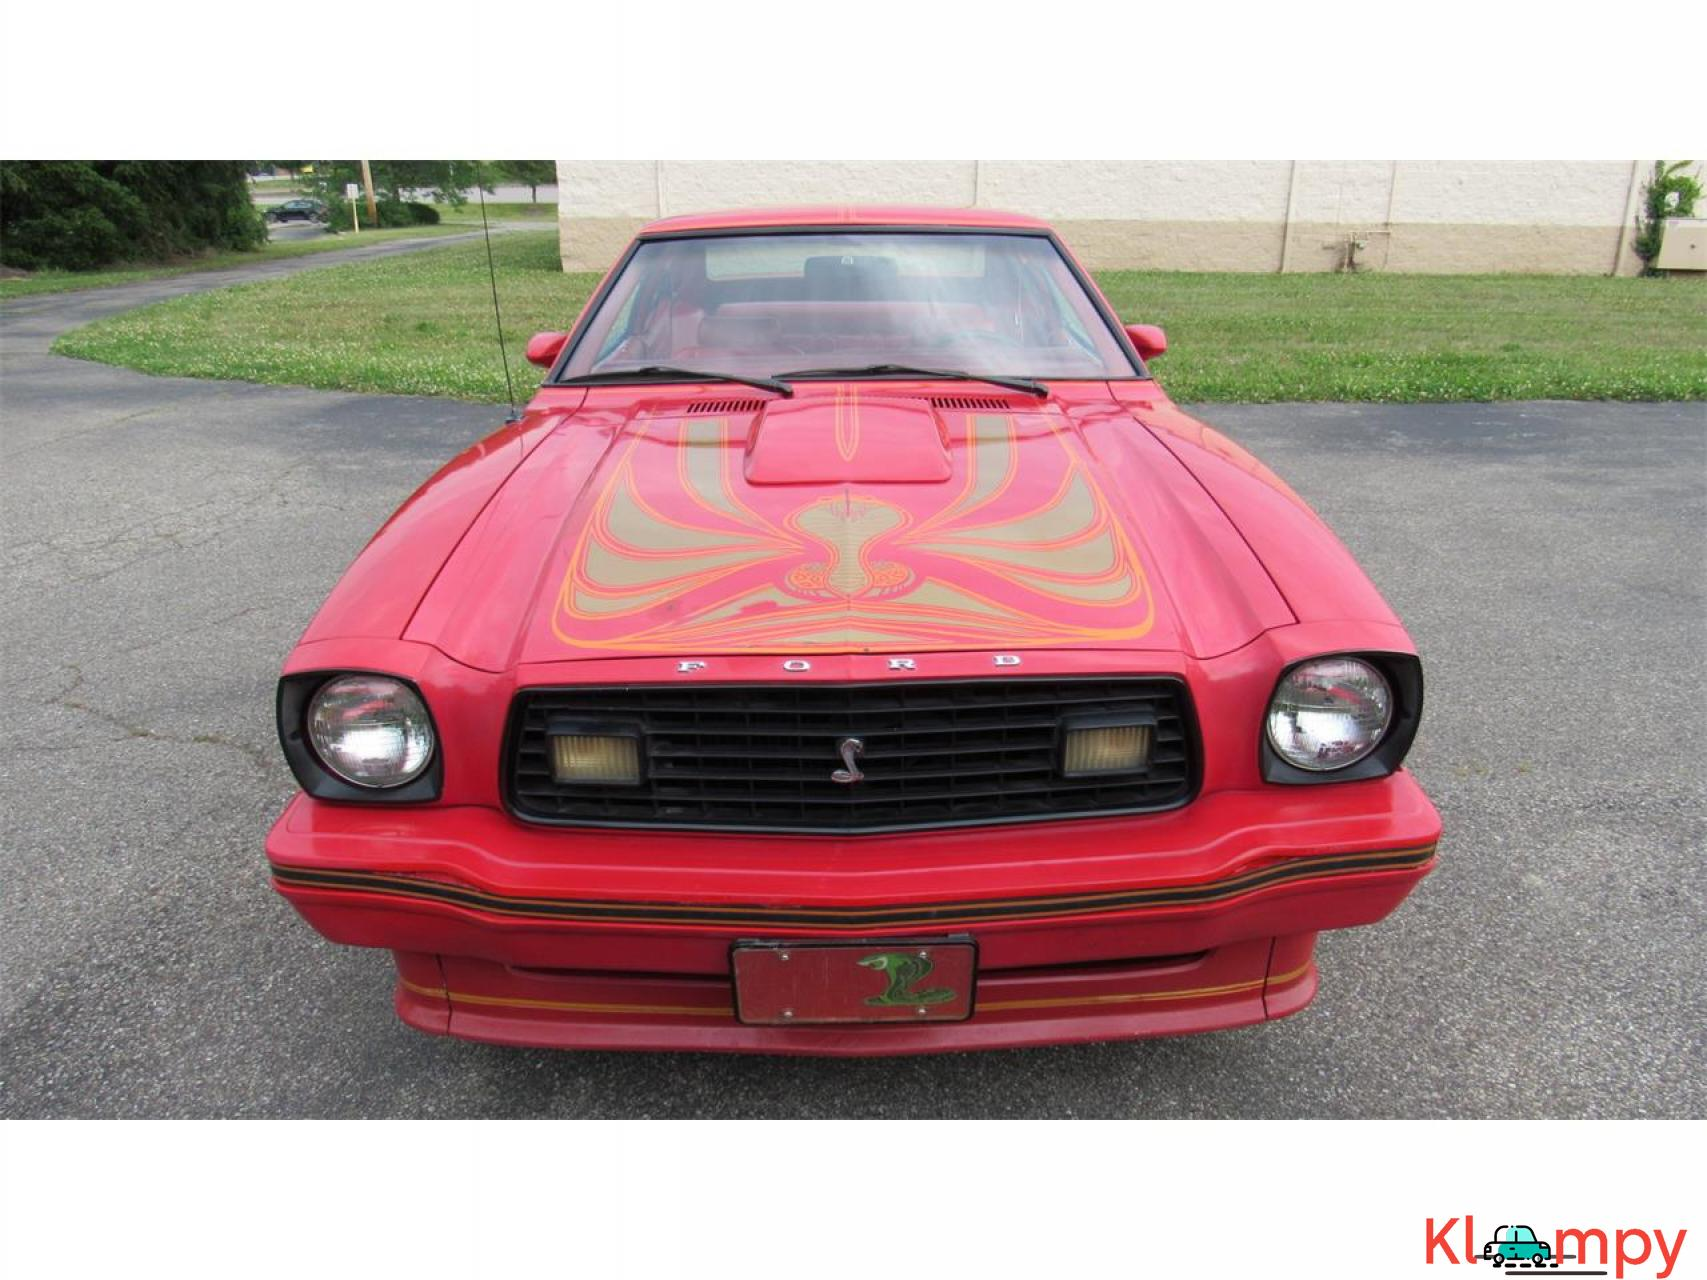 1978 Ford Mustang 302ci V8 Red - 9/17